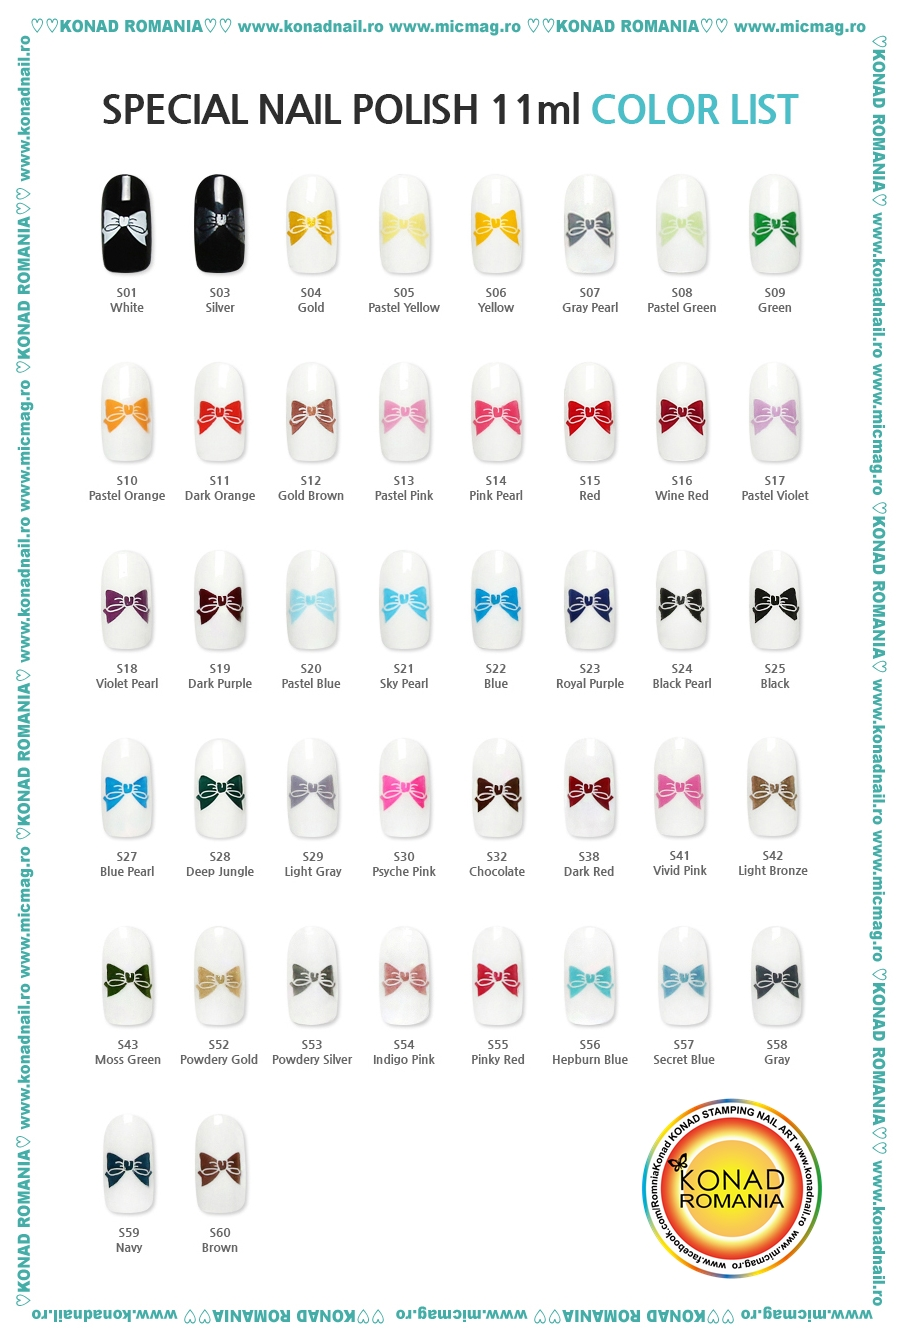 special_polish_11ml_colorchart.jpg